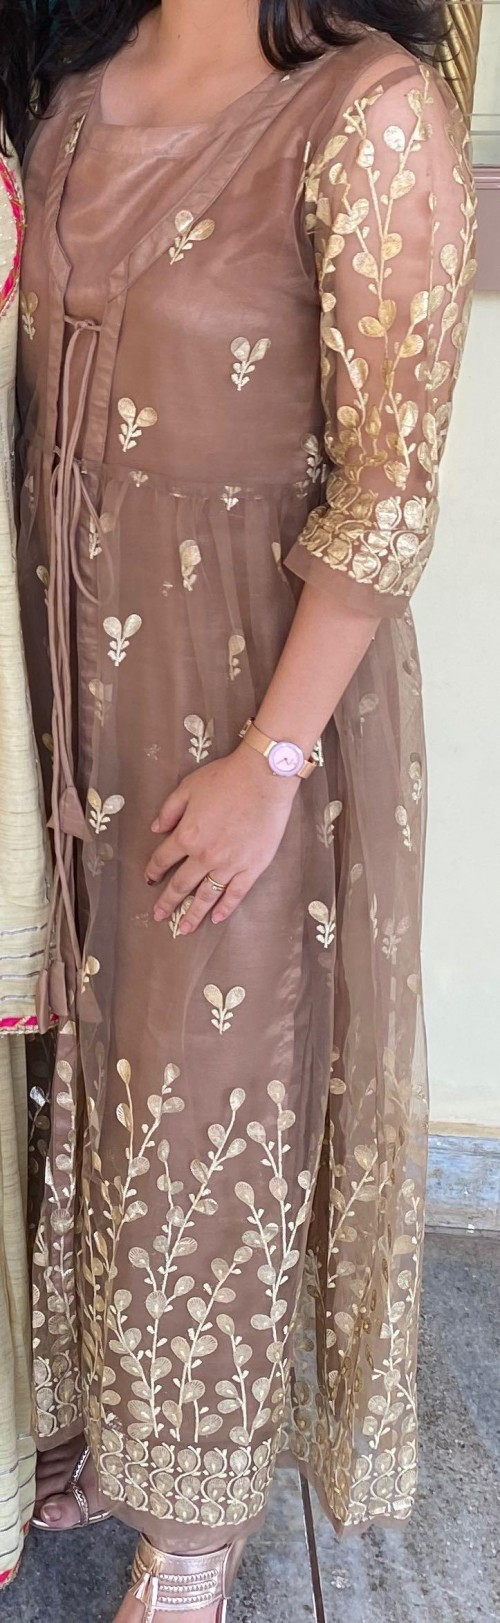 Looking for Similar dress with cape - SeenIt